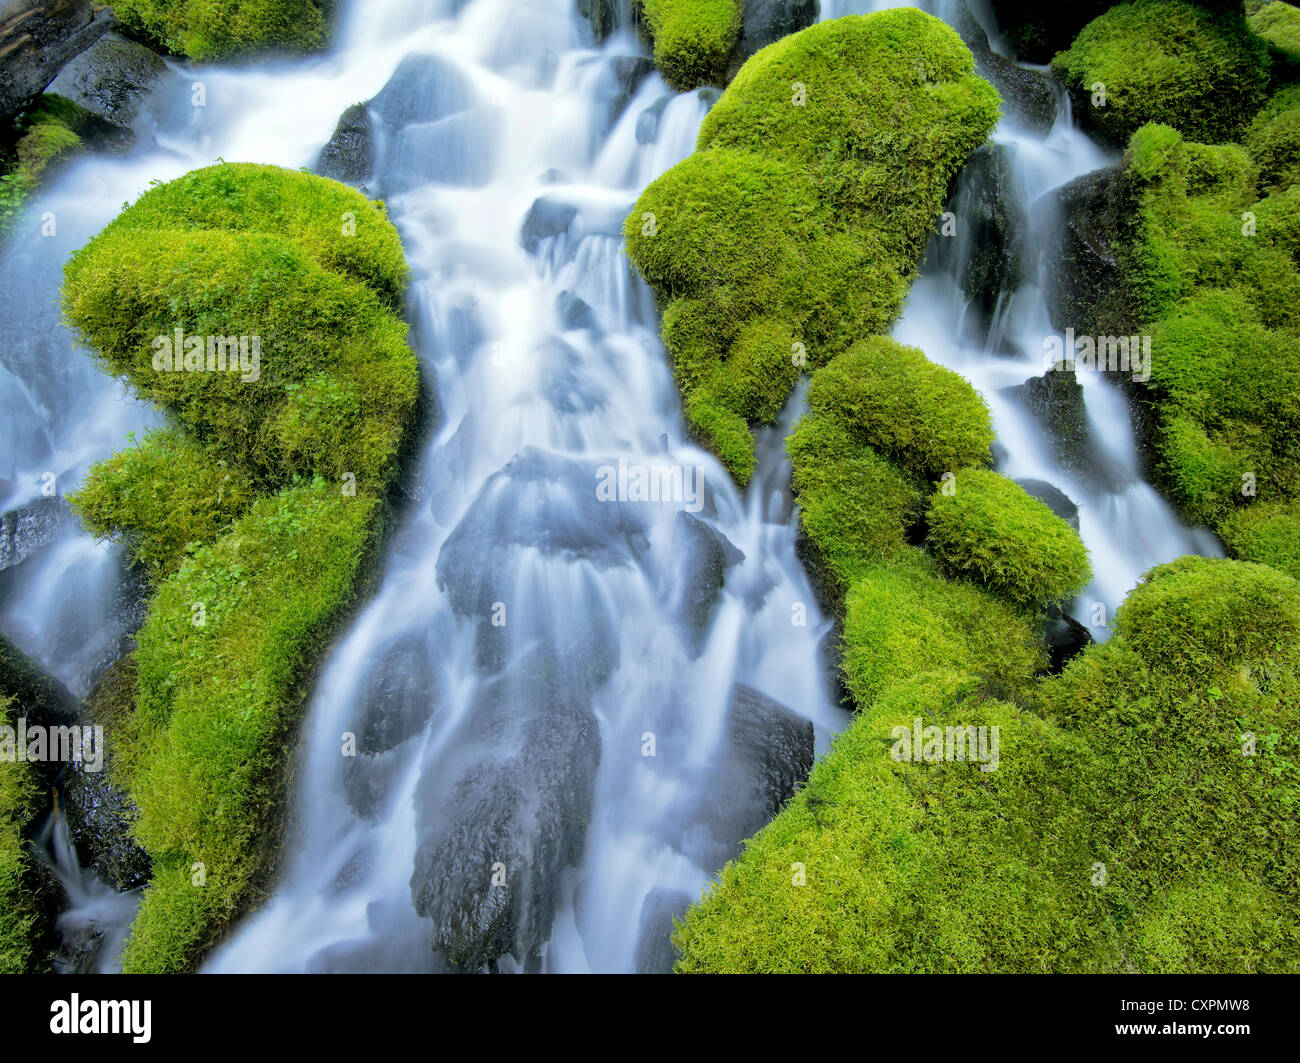 Clearwater falls with moss. Umpqua National Forest, Oregon - Stock Image